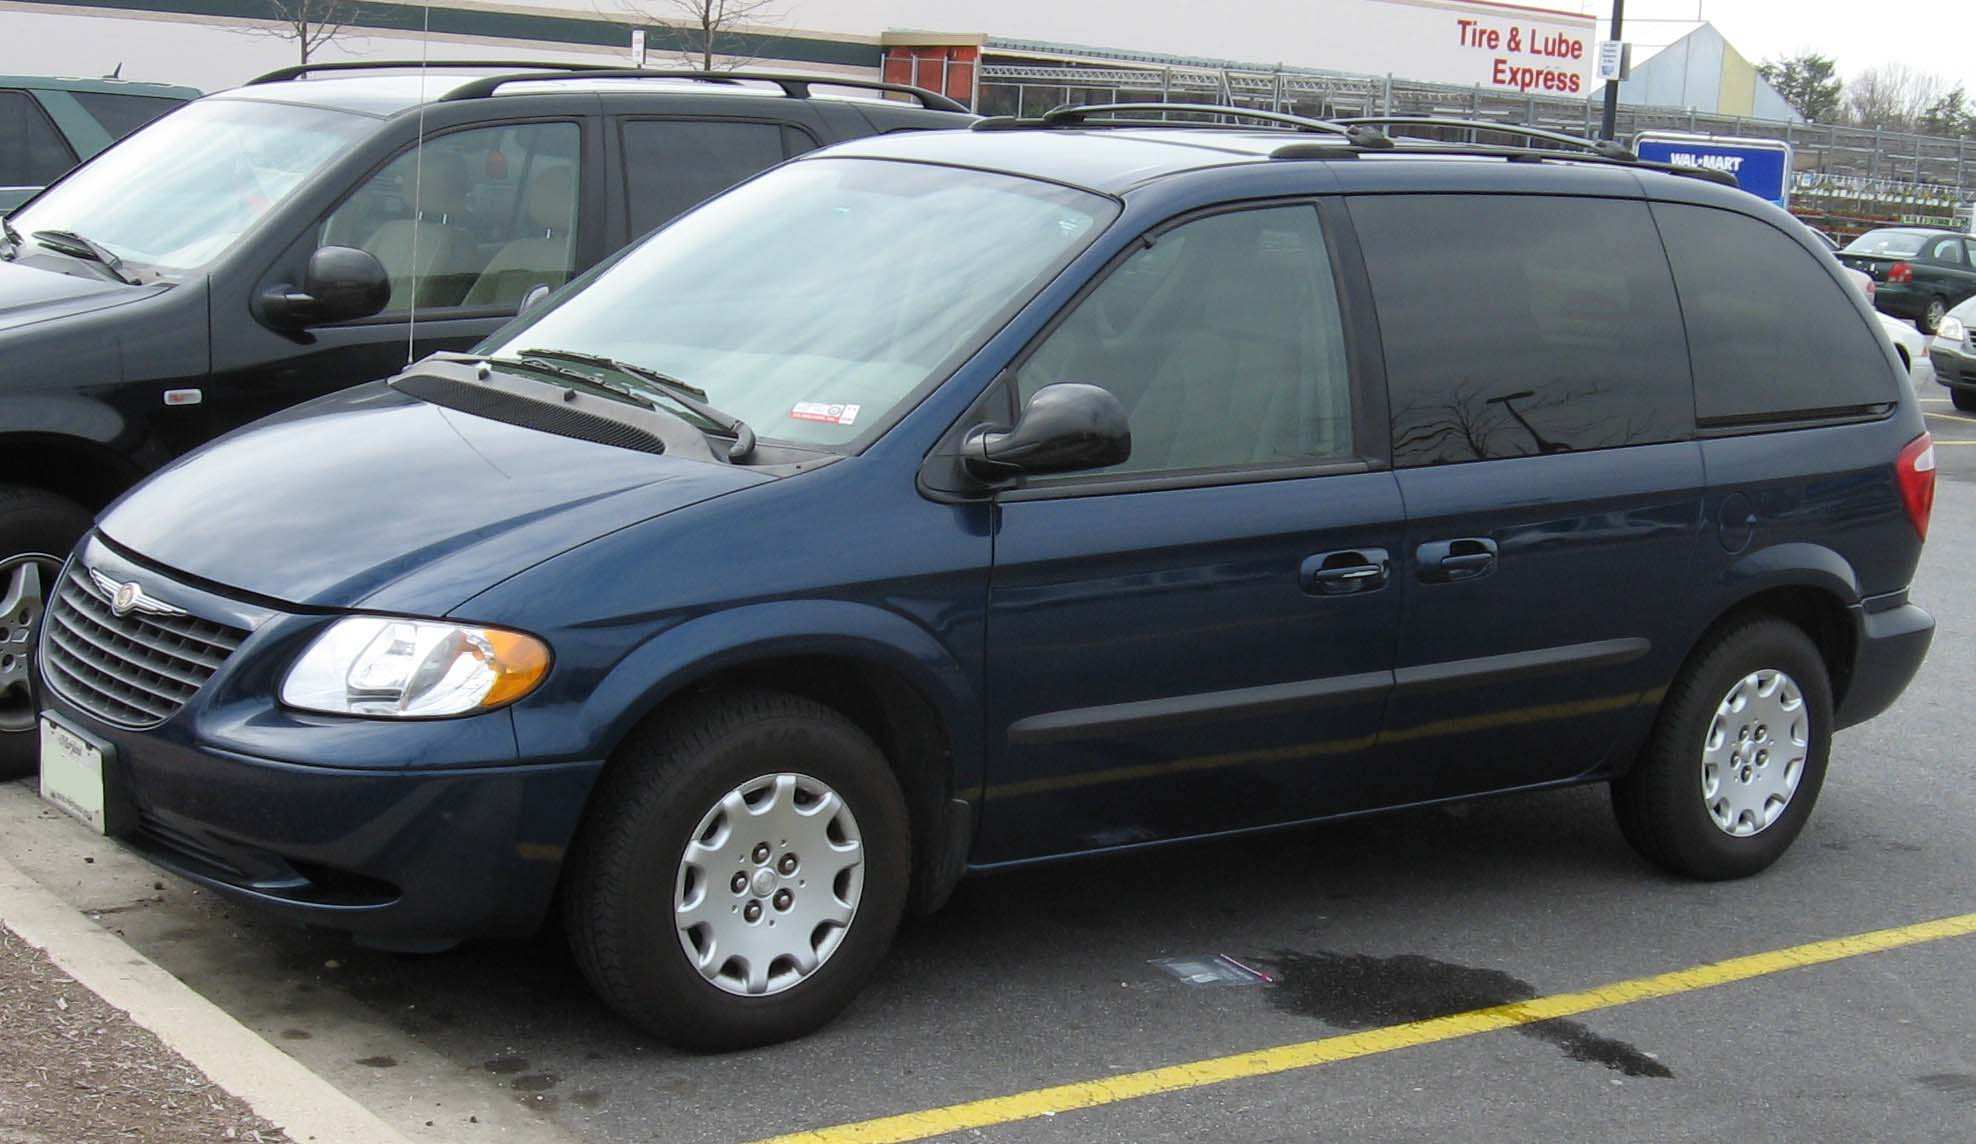 Chrysler Voyager 2002 User Manual Best Guides And Manuals Engine Diagram 187px Image 9 Rh Momentcar Com